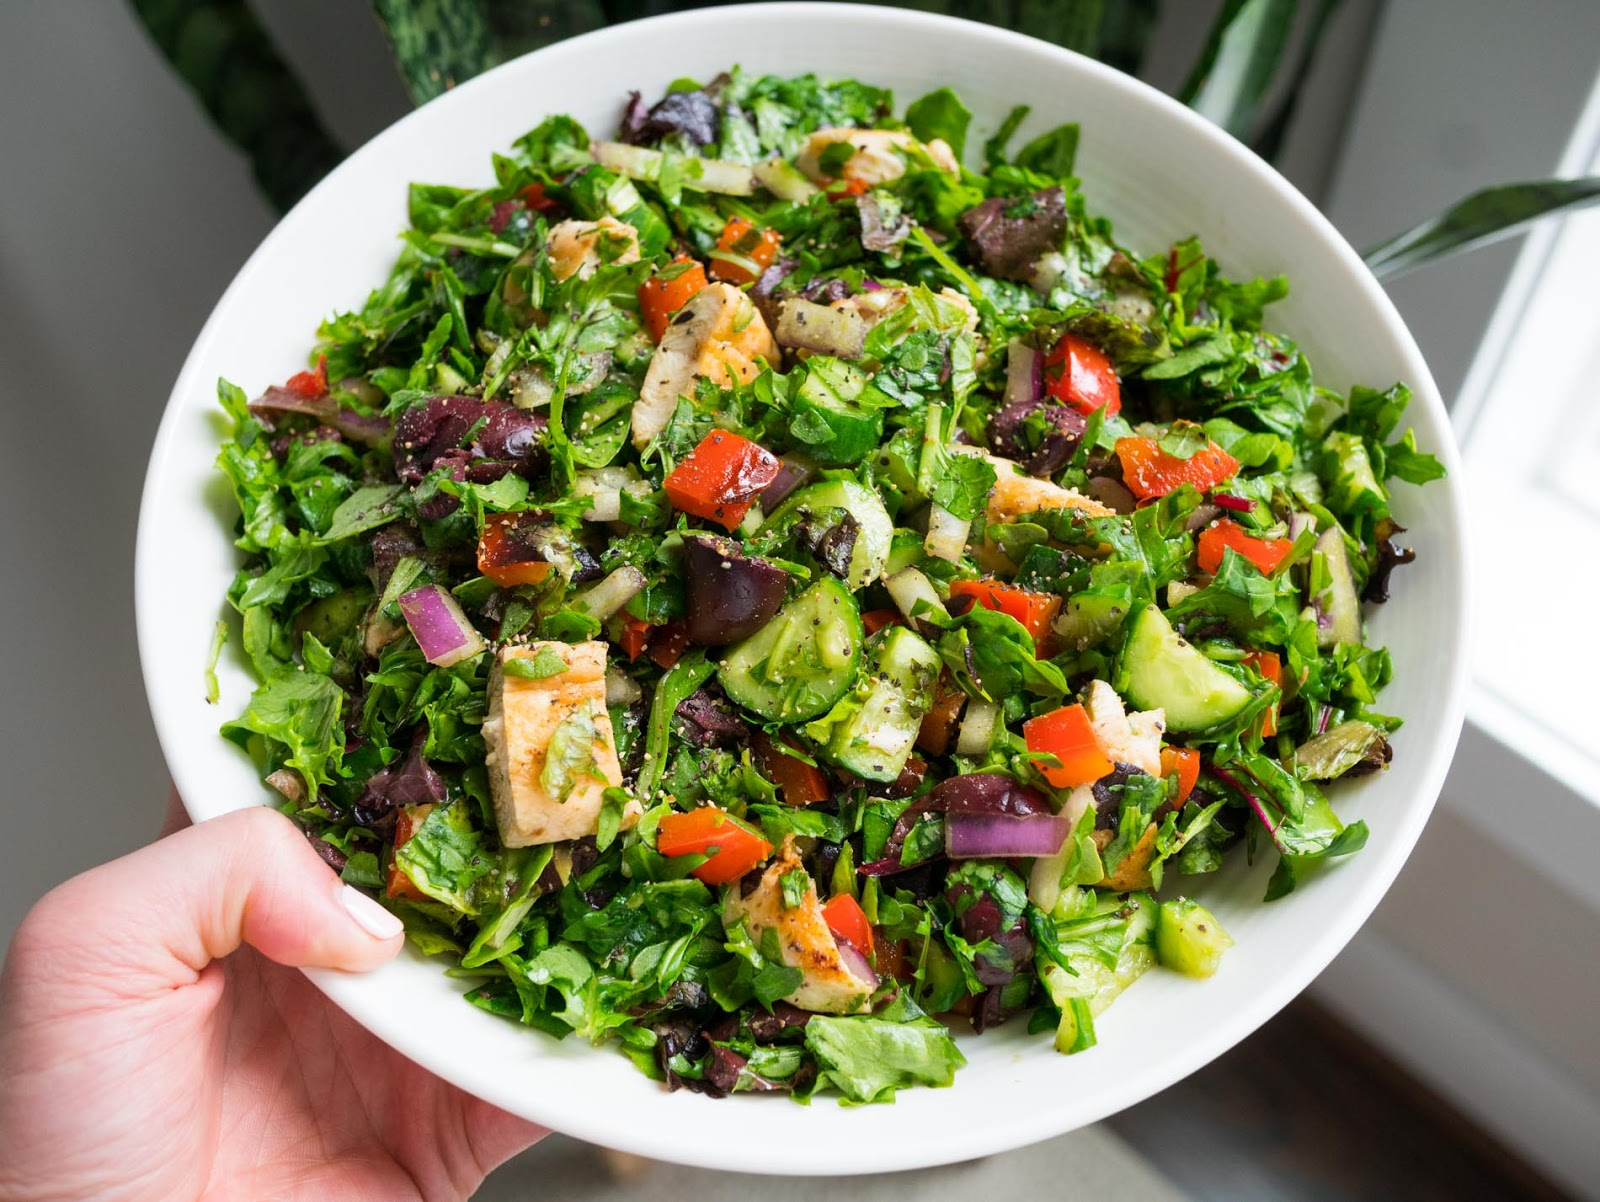 Easy Dinner Ideas for Two: Chopped salad